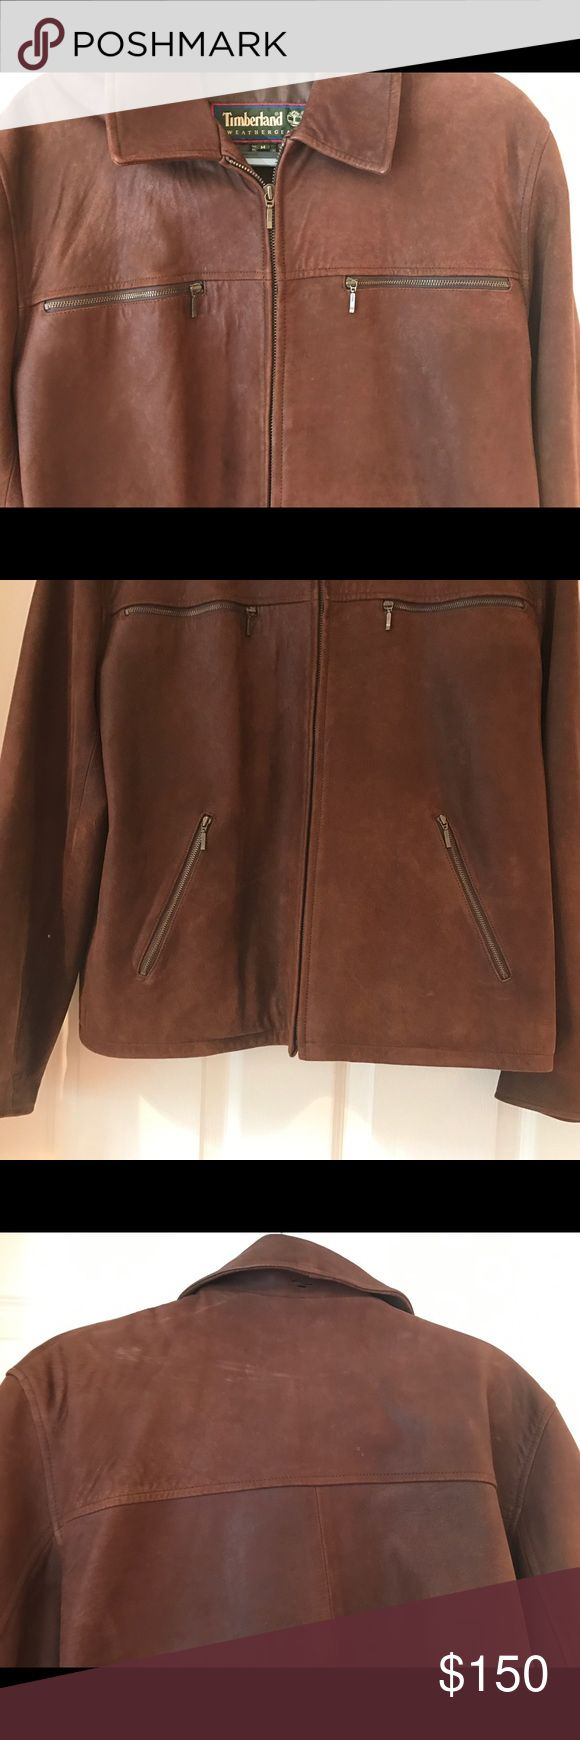 Timberland leather jacket TIMBERLANDGENUINE WATERPROOF LAMBSKIN LEATHER JACKET IN GREAT CONDITION  FOUR EXTERIOR ZIP POCKETS  ZIP FRONT CLOSURE  ZIP SLEEVE AT BOTTOM  FULLY LINED  PLEASE SEE ALL PHOTOS MINIMAL SIGNS OF WEAR AS YOU CAN SEE IN PICTURE OF COLLAR AND ON BACK THE TOP Timberland Jackets & Coats